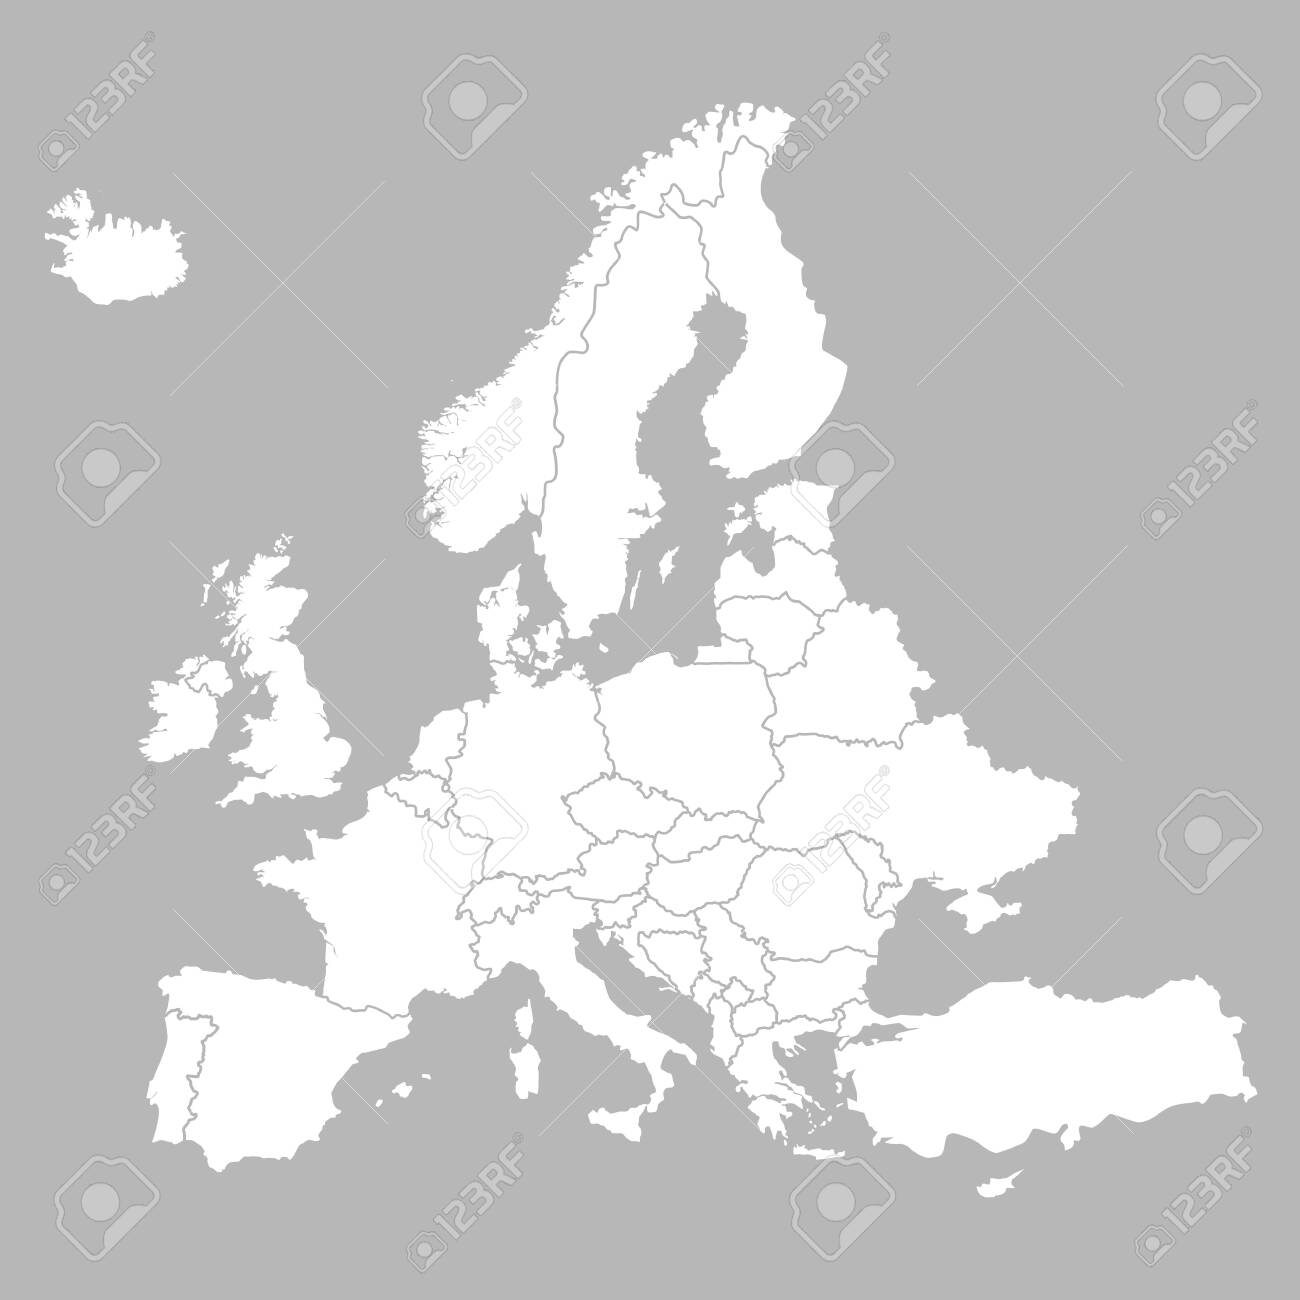 Picture of: Europe Blank Map With Countries Europe White Map Isolated On Royalty Free Cliparts Vectors And Stock Illustration Image 128957569